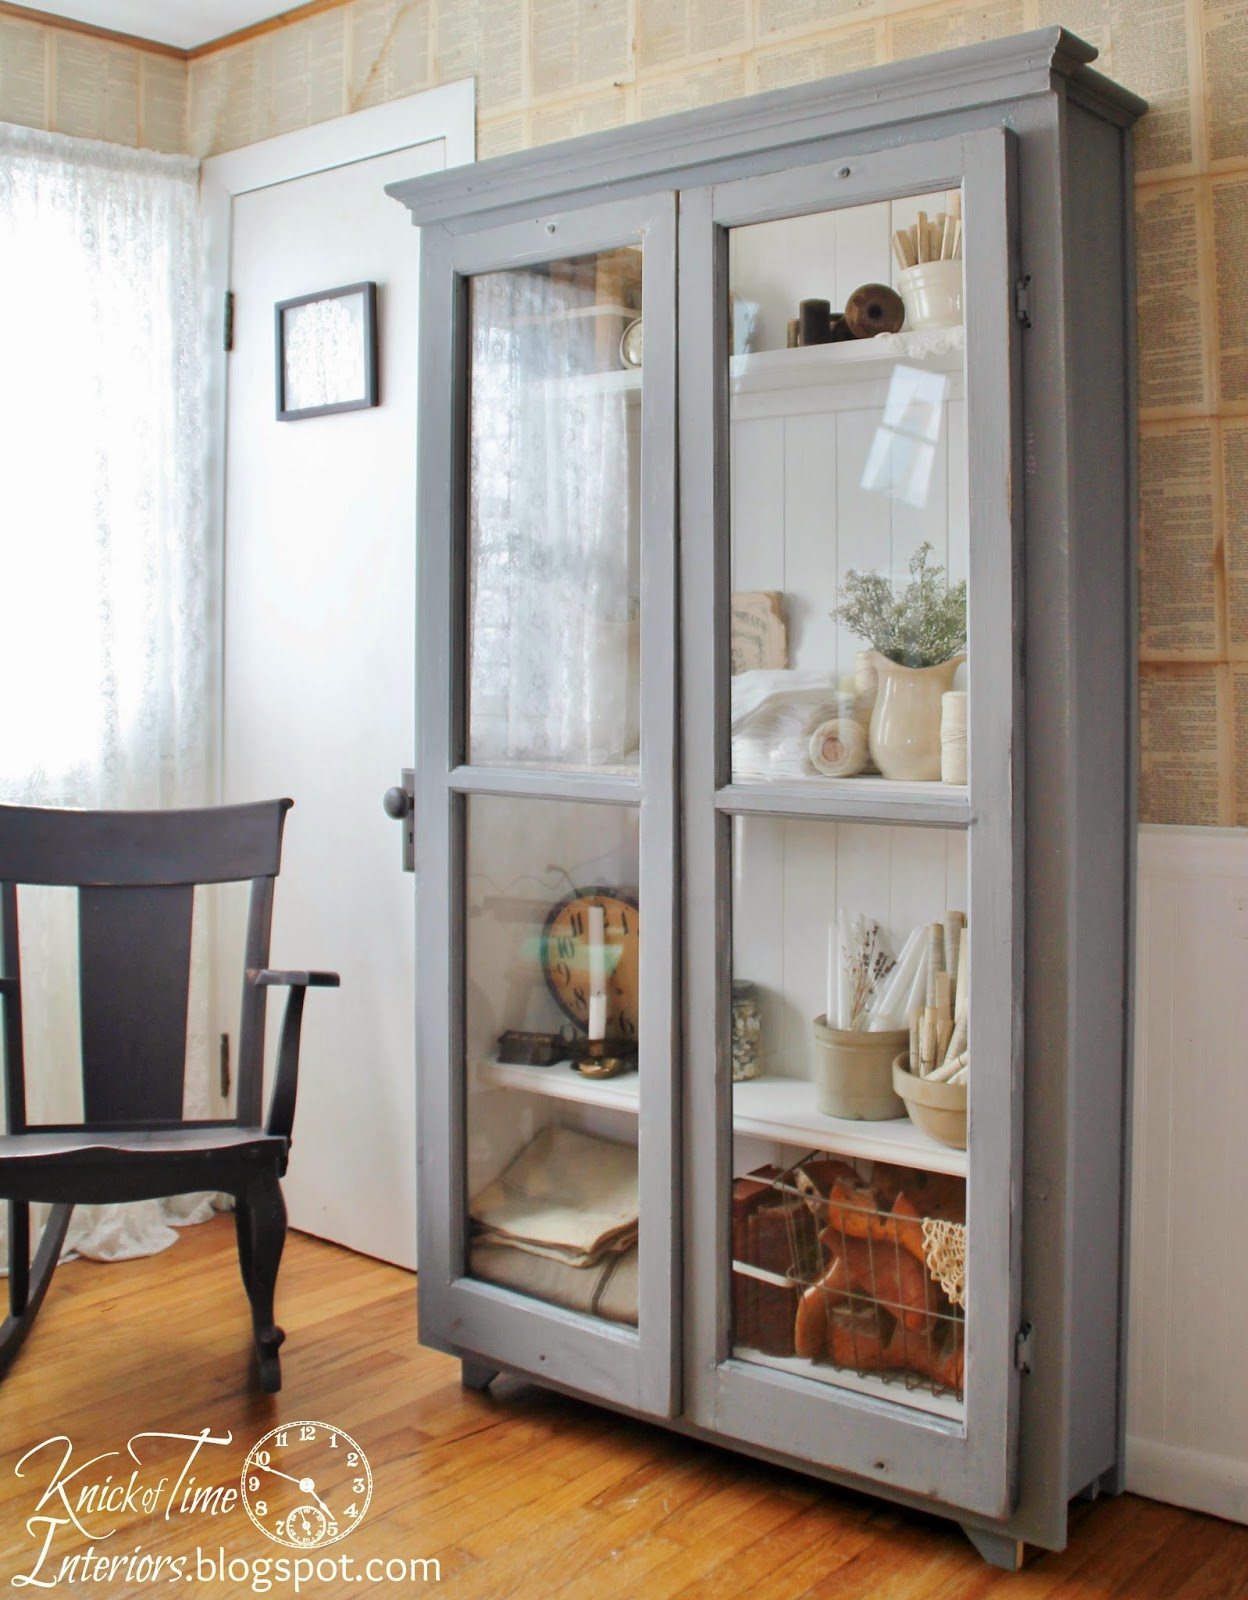 Repurposed Windows into Cupboard inspired by Dreamy Whites